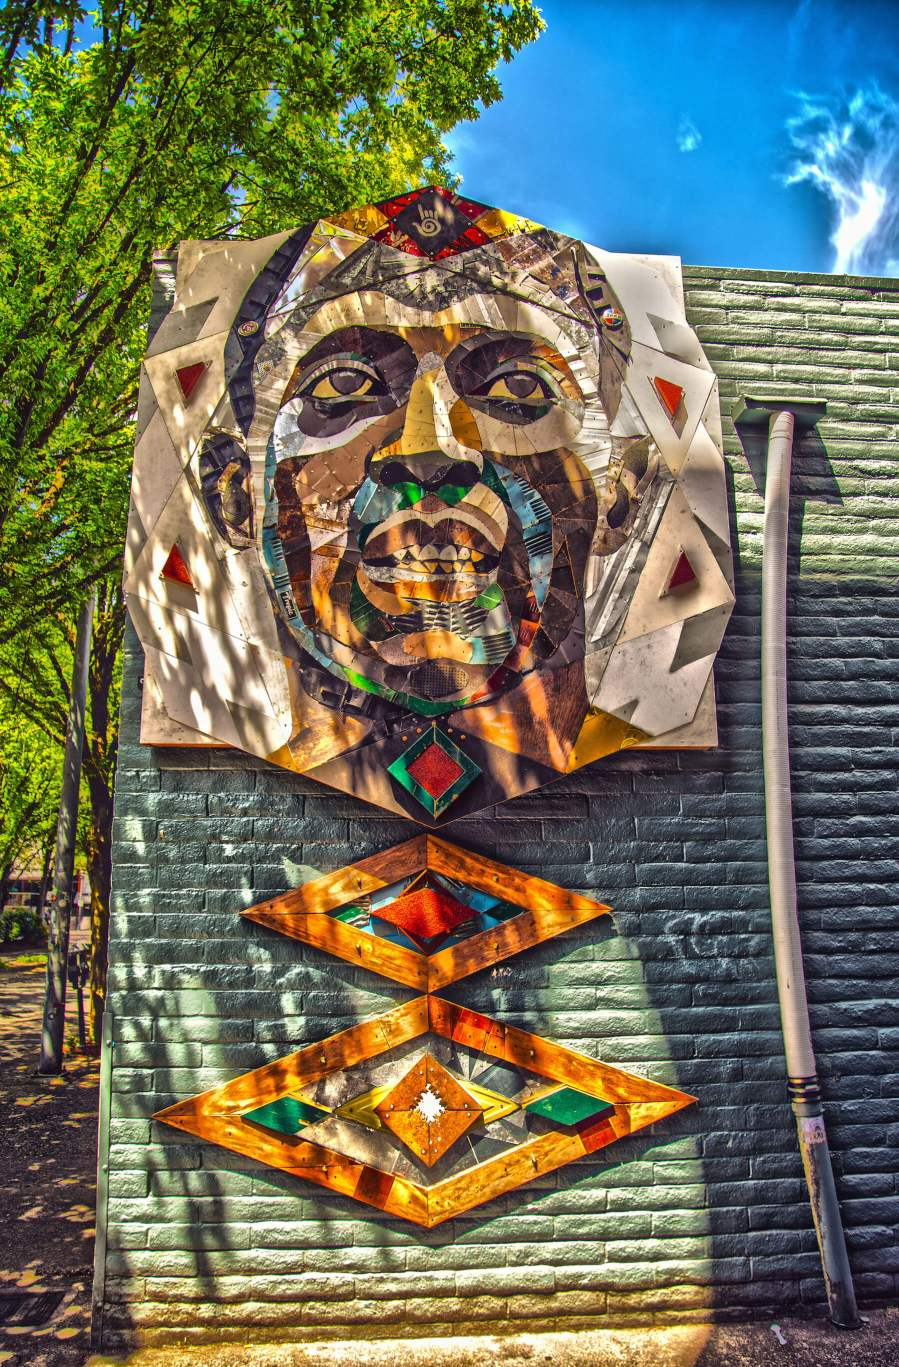 Matt Small, Jesse Owens Tribute, Re-claimed materials Sculpture, 20x21EUG Mural Project, Eugene, Oregon. Photo Credit Ben Schorzman